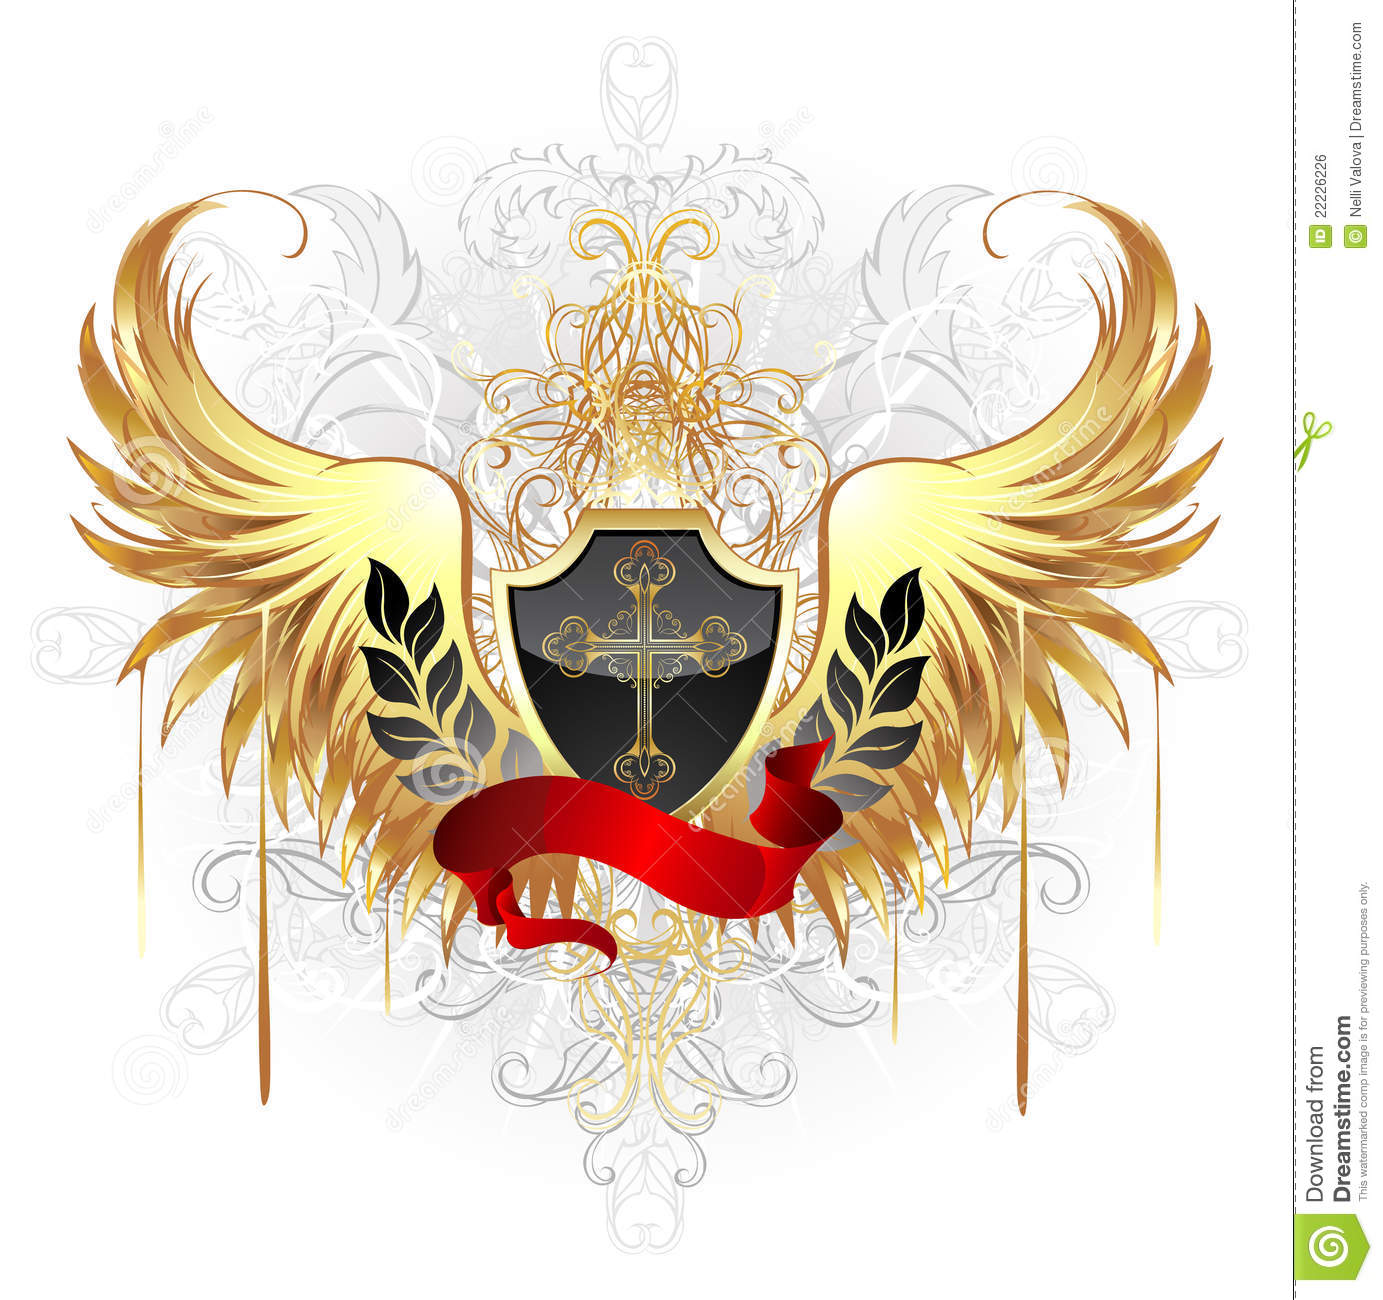 Shield design set royalty free stock photos image 5051988 - Black Shield With Golden Wings Royalty Free Stock Image